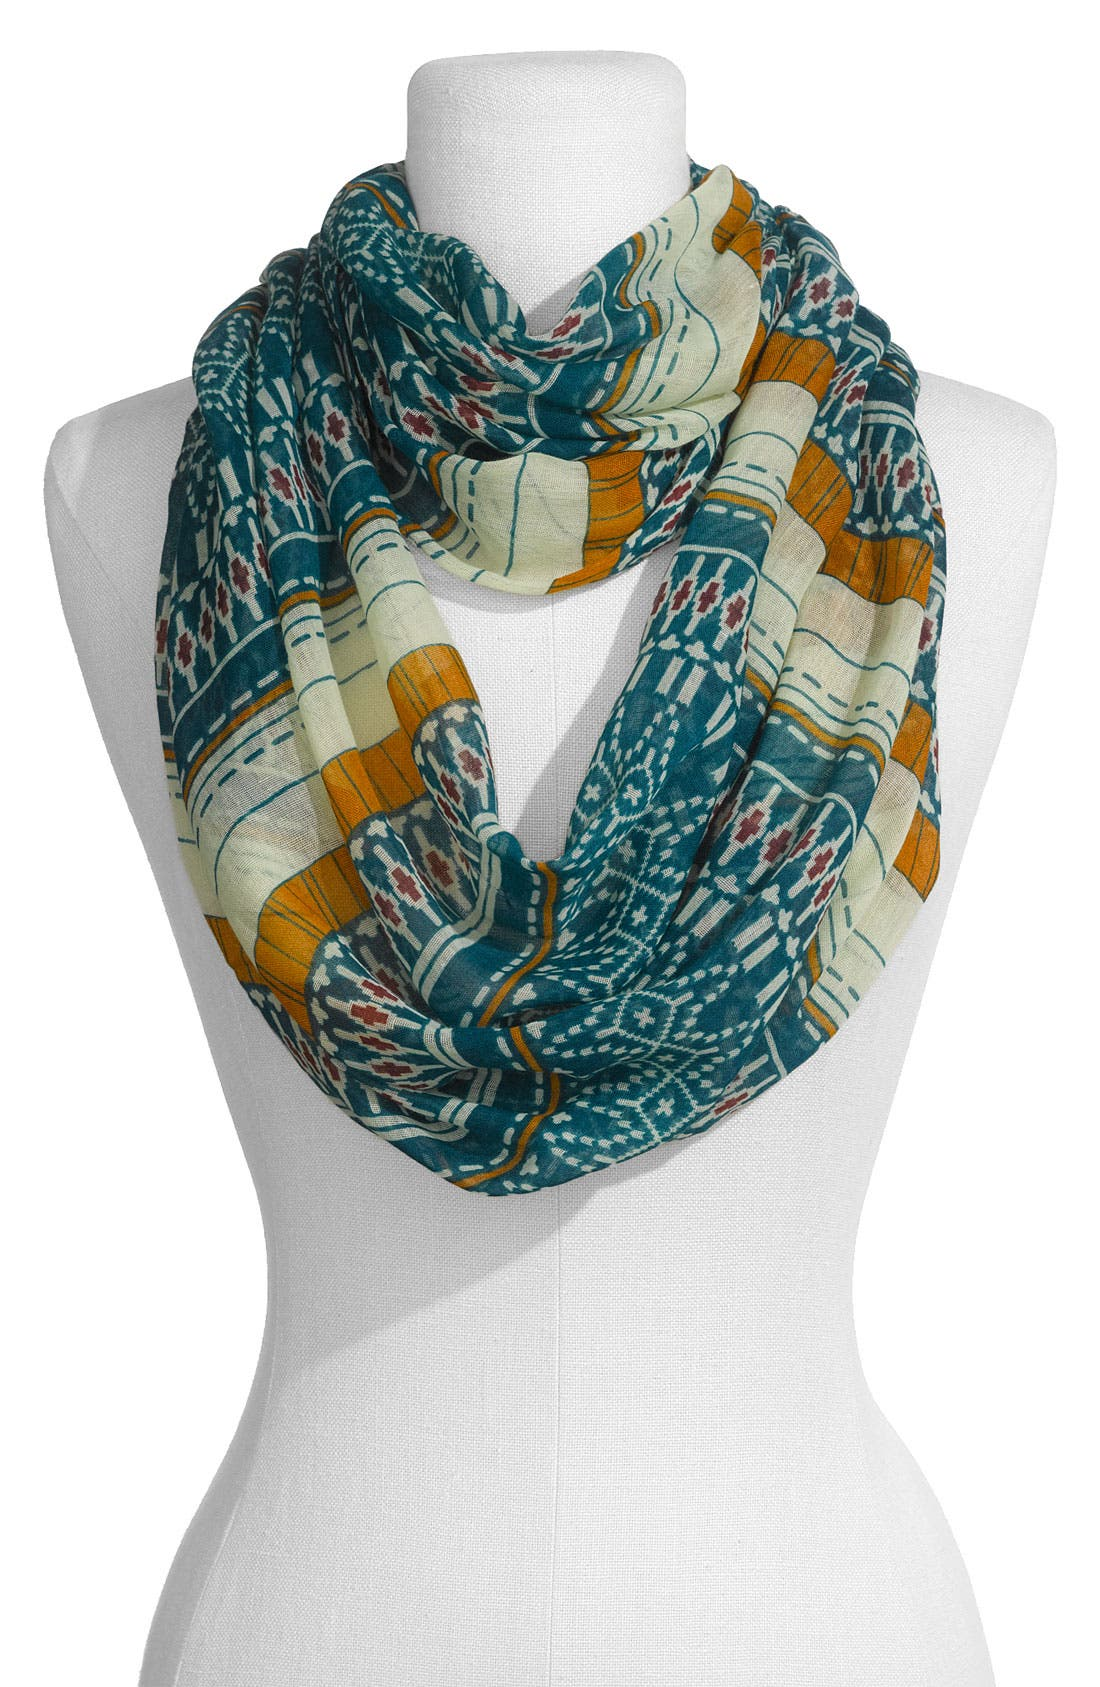 Alternate Image 1 Selected - Lulu Tribal Print Infinity Scarf